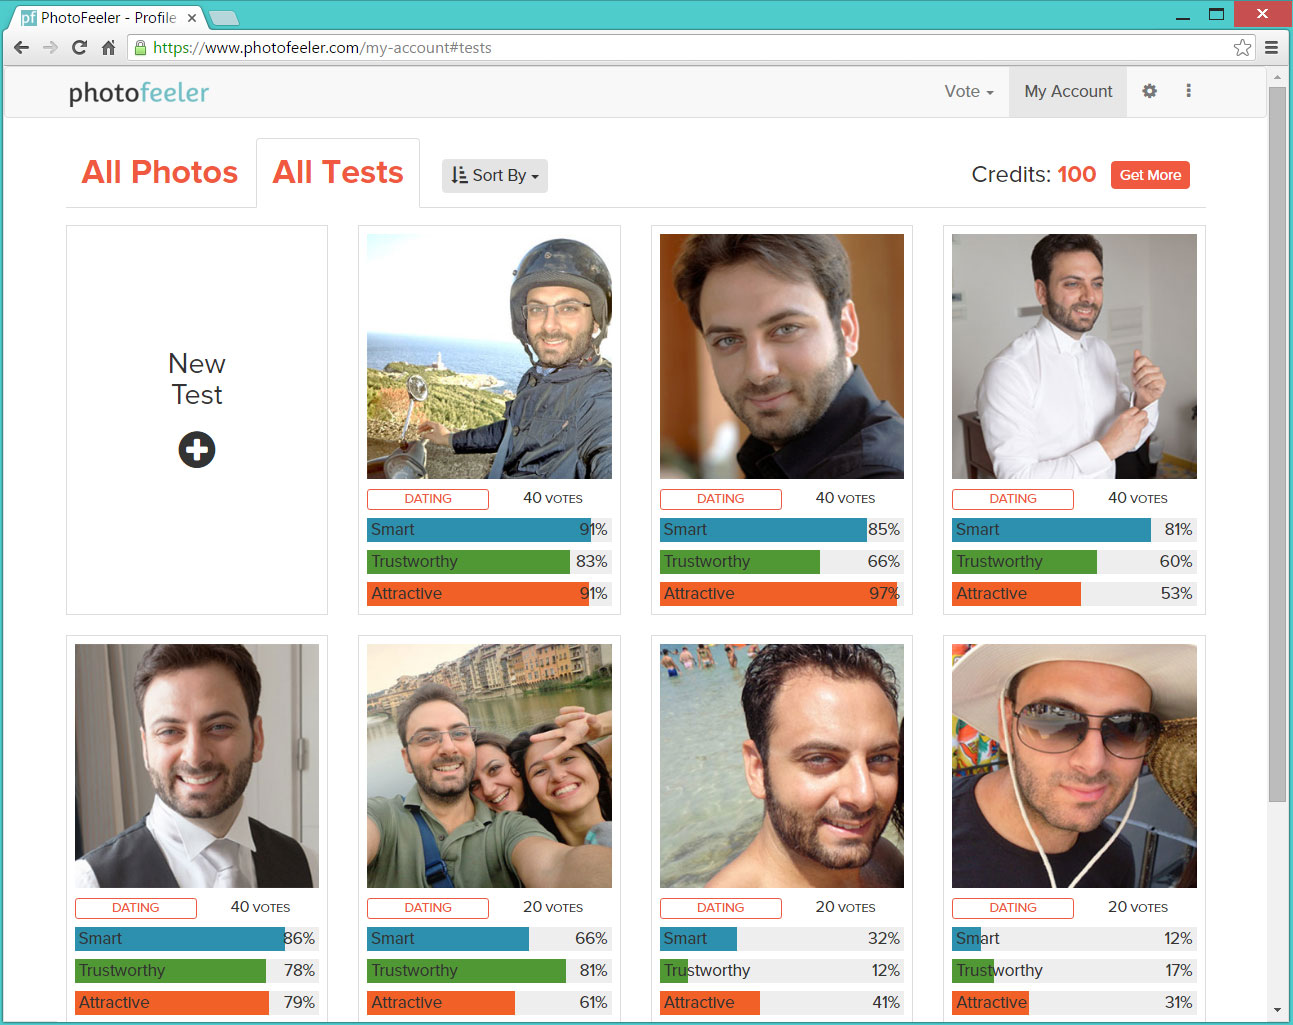 Photofeeler photo testing - better for getting matches than Tinder Gold